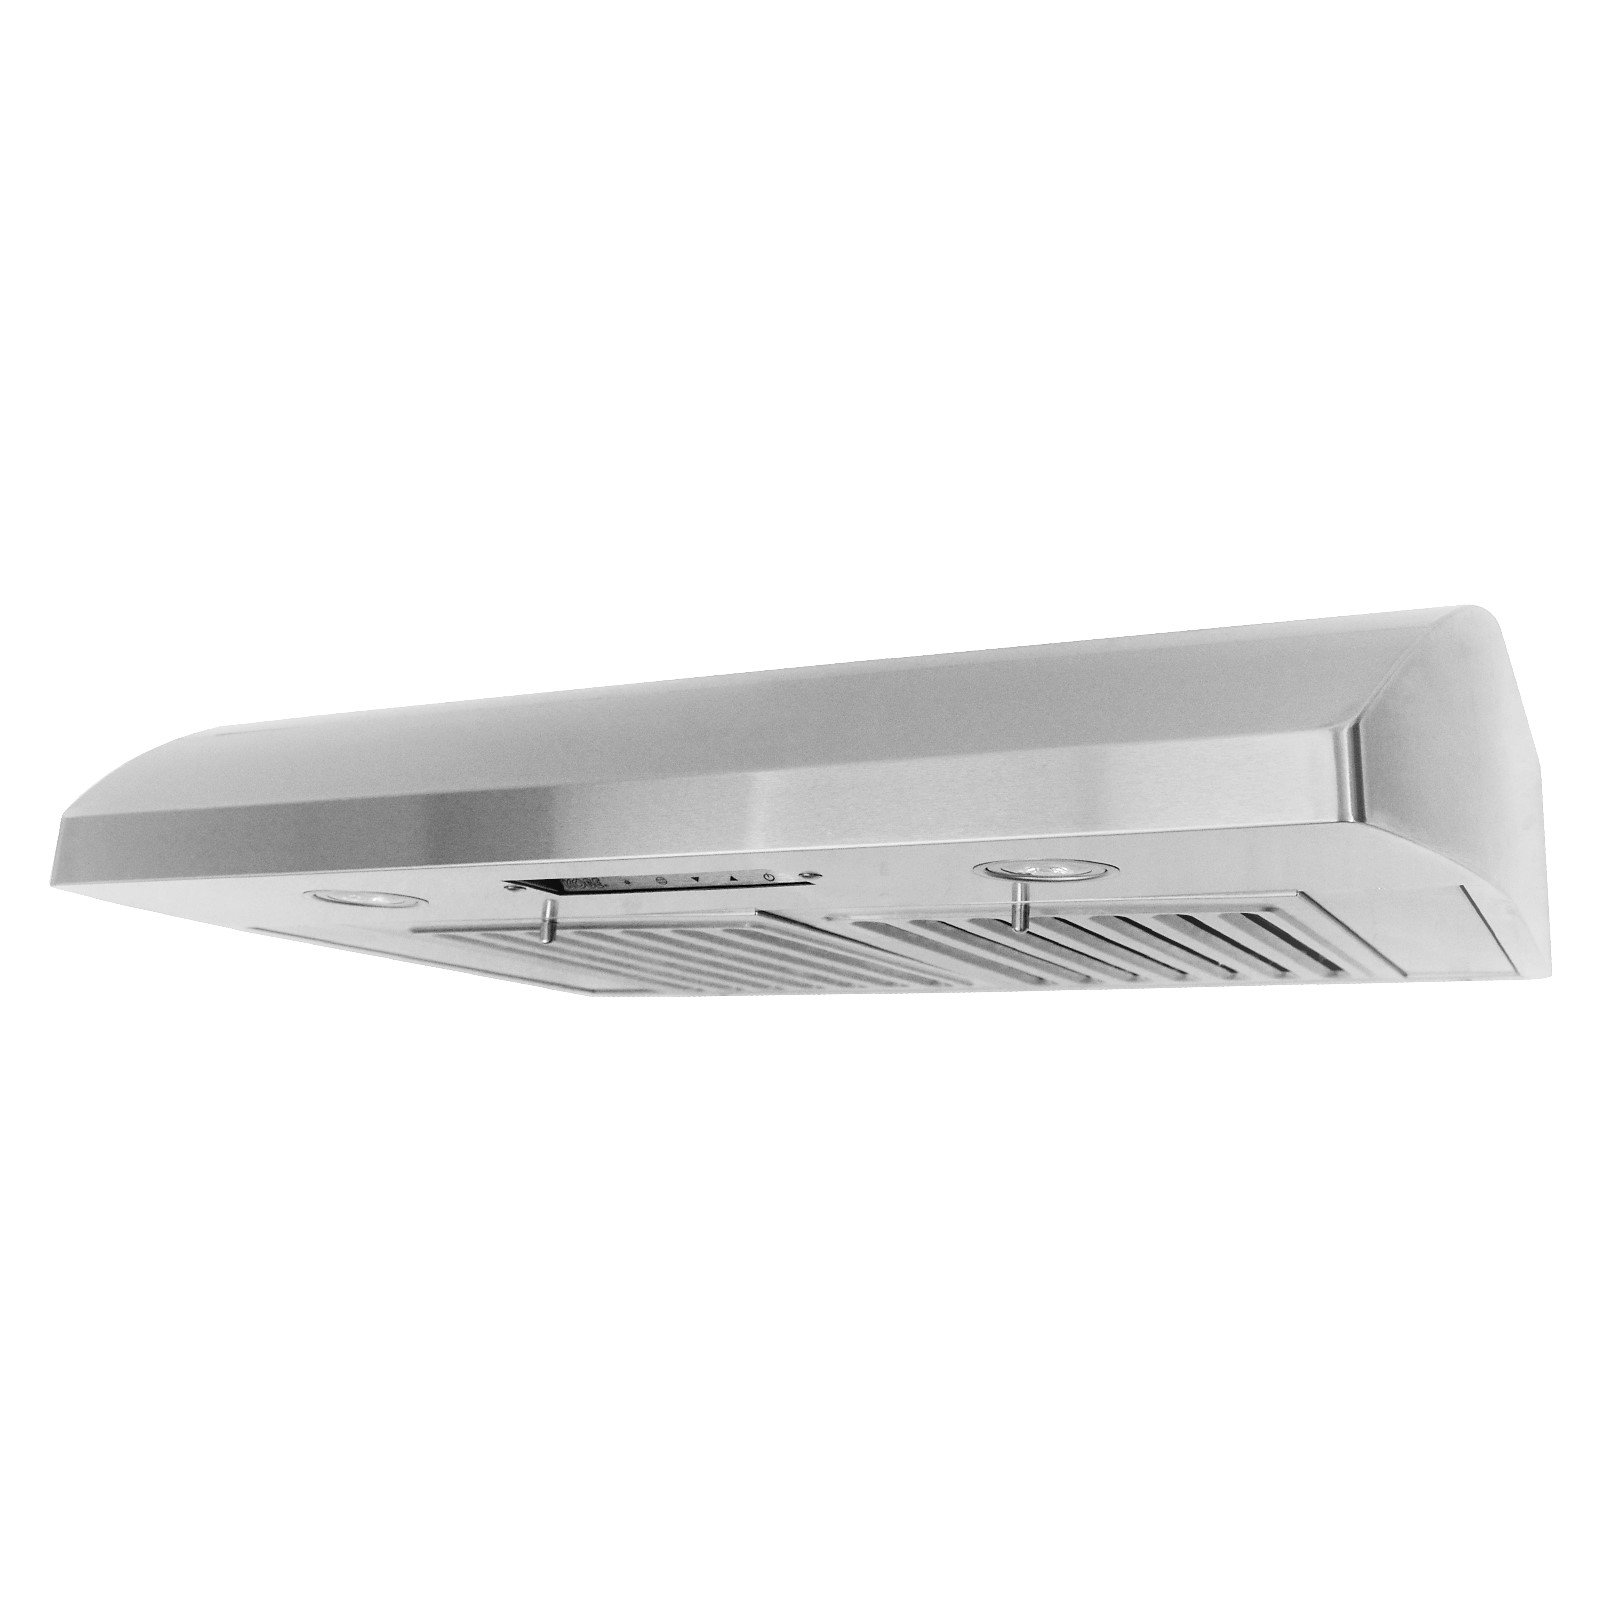 KOBE CH2236SQB-5 Deluxe 36'' Under Cabinet Range Hood, 6-Speed, 640 CFM, LED Lights, Baffle Filters